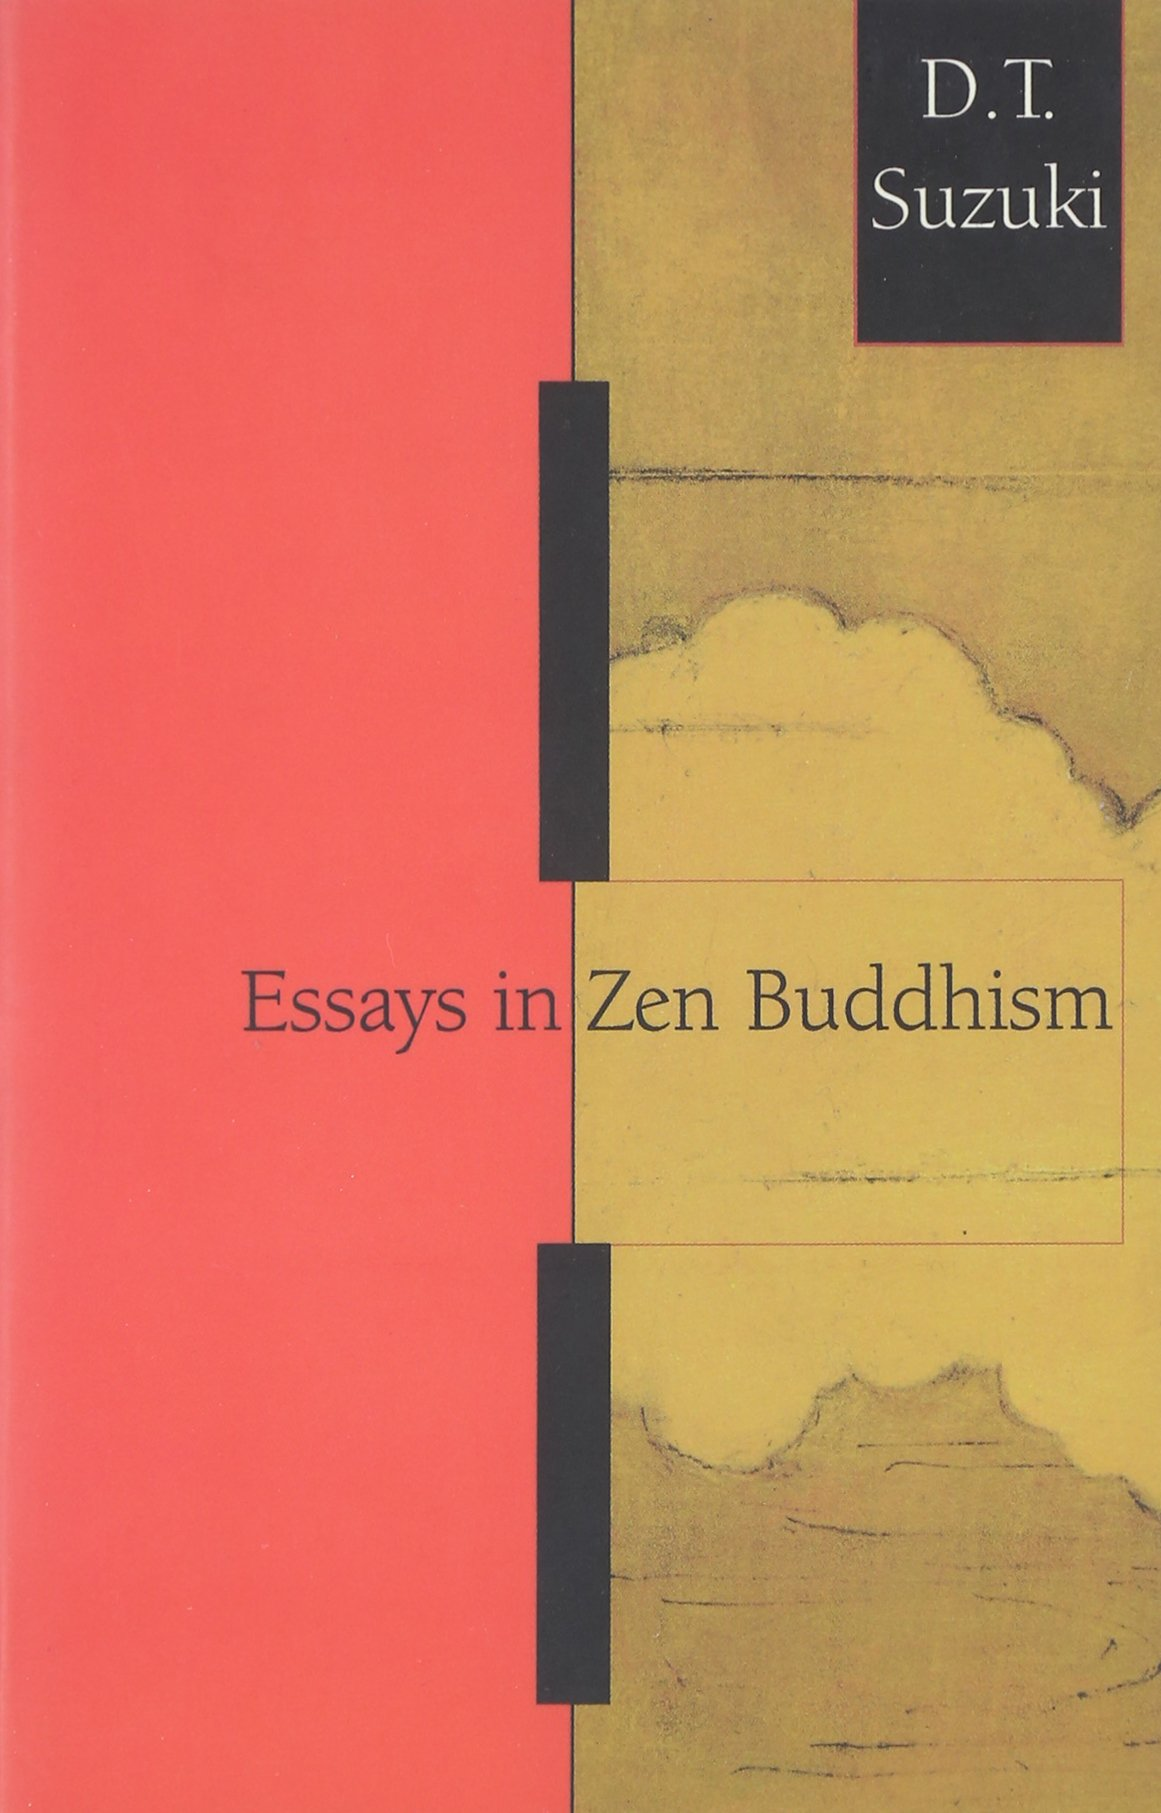 013 71cccelhvrl Buddhism Essay Beautiful Buddha In Hindi Ideas Full